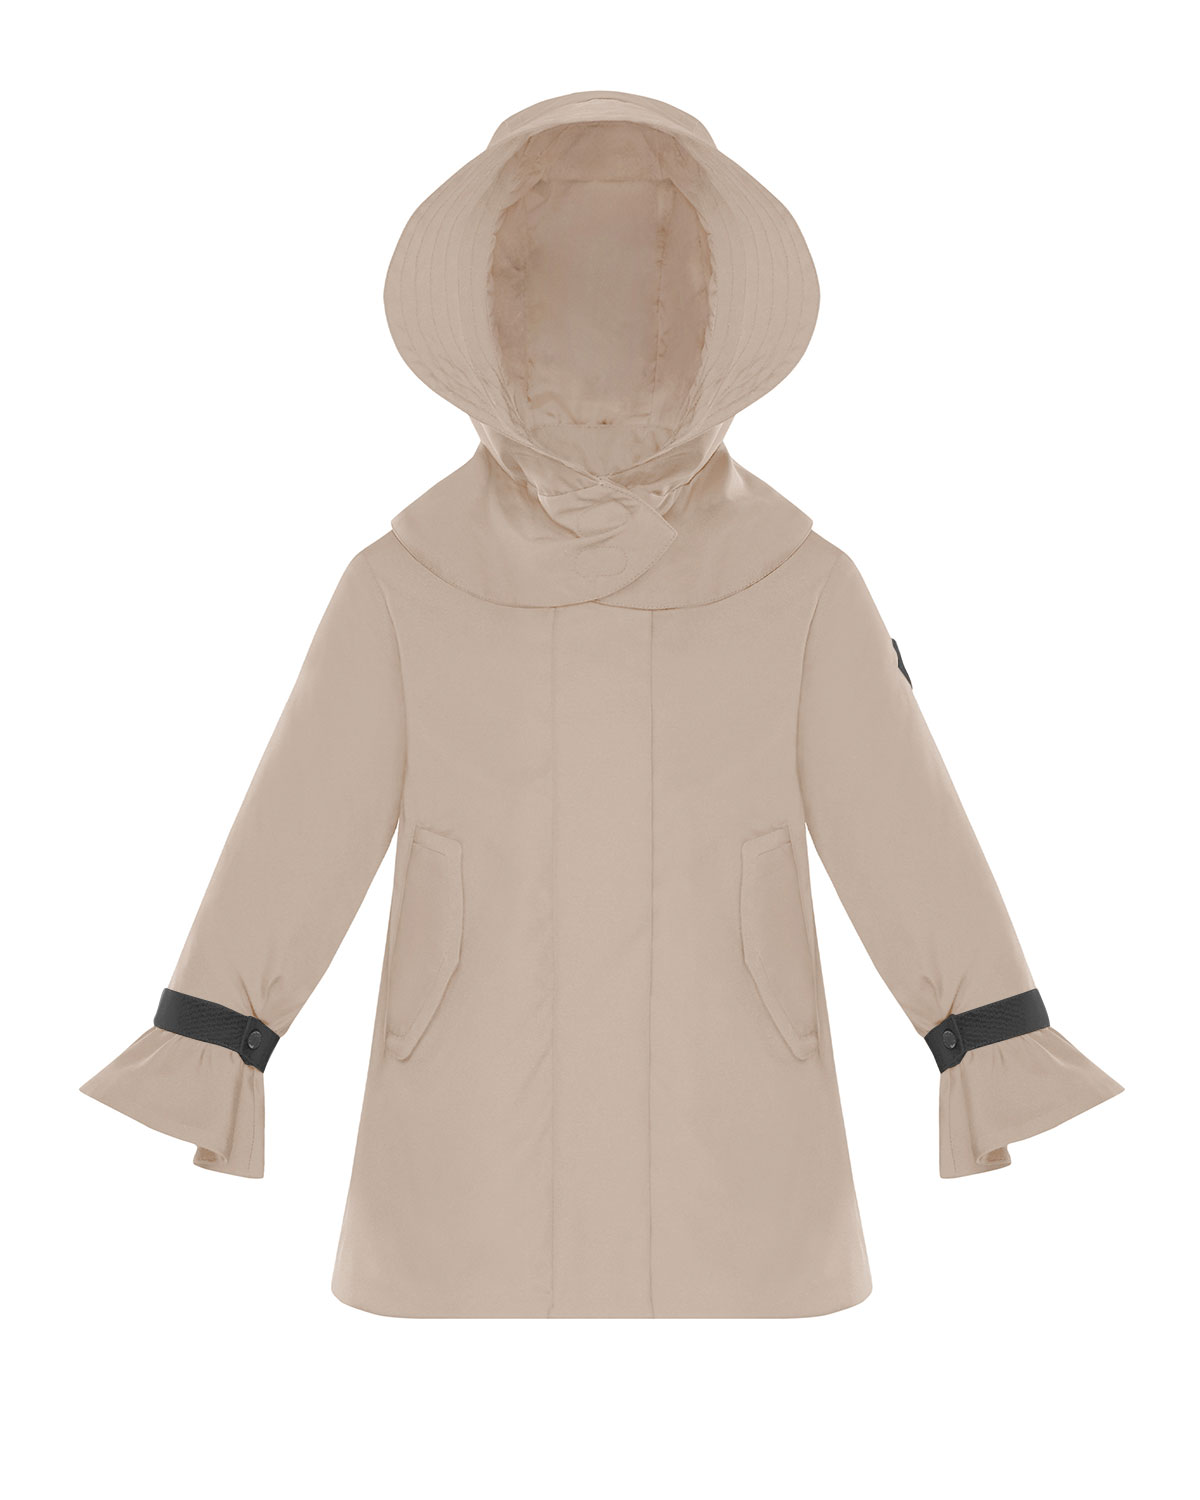 Moncler GIRL'S ATHELAS PLEATED TRENCH COAT W/ DETACHABLE HOOD